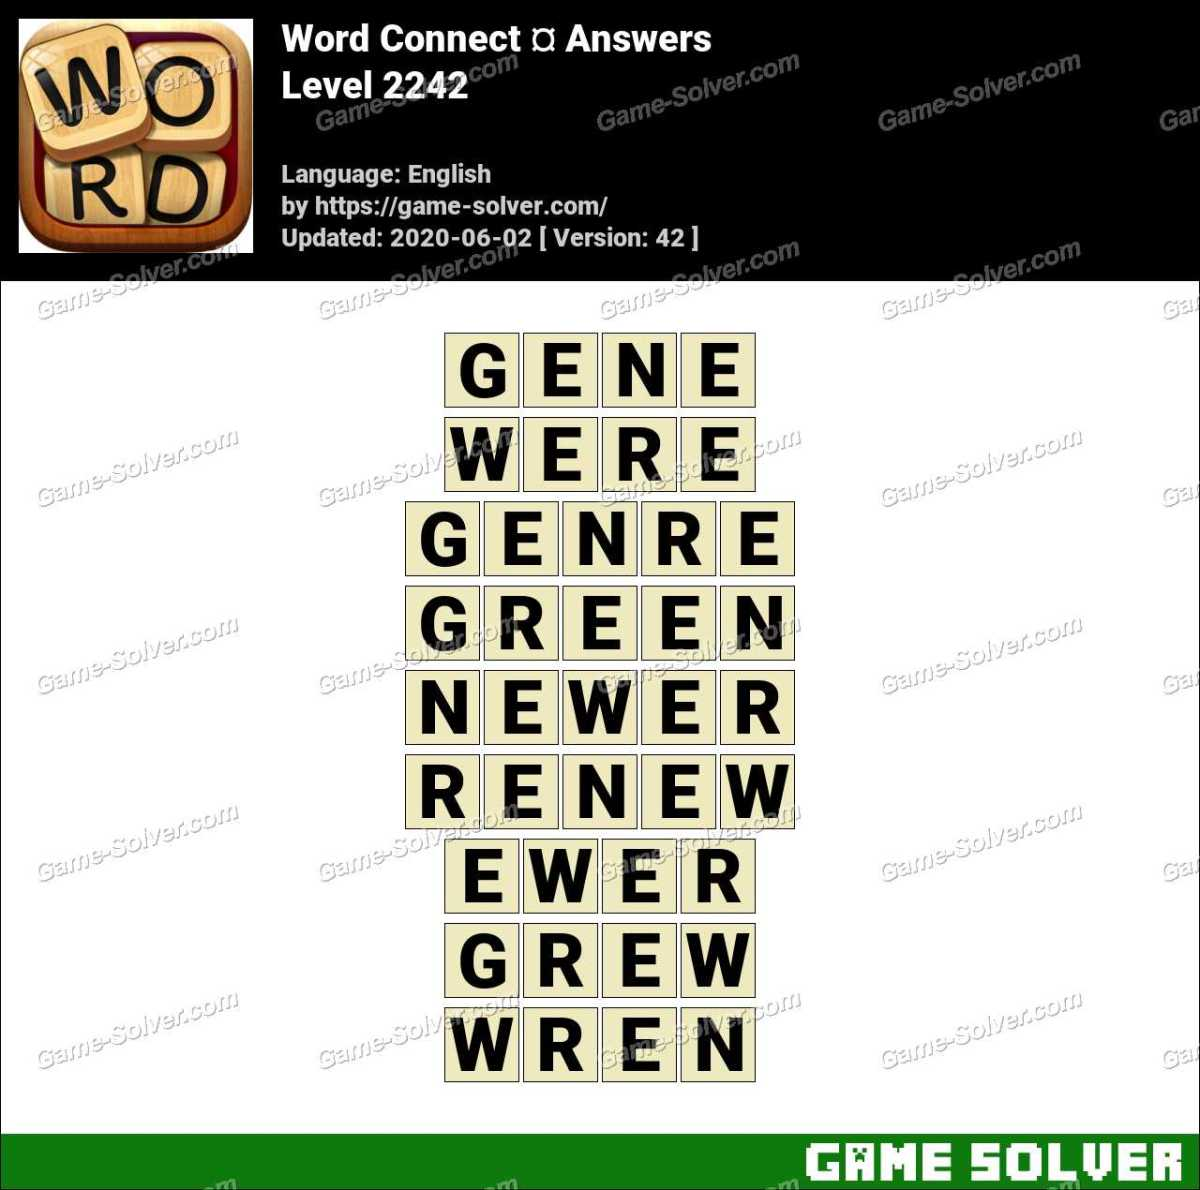 Word Connect Level 2242 Answers